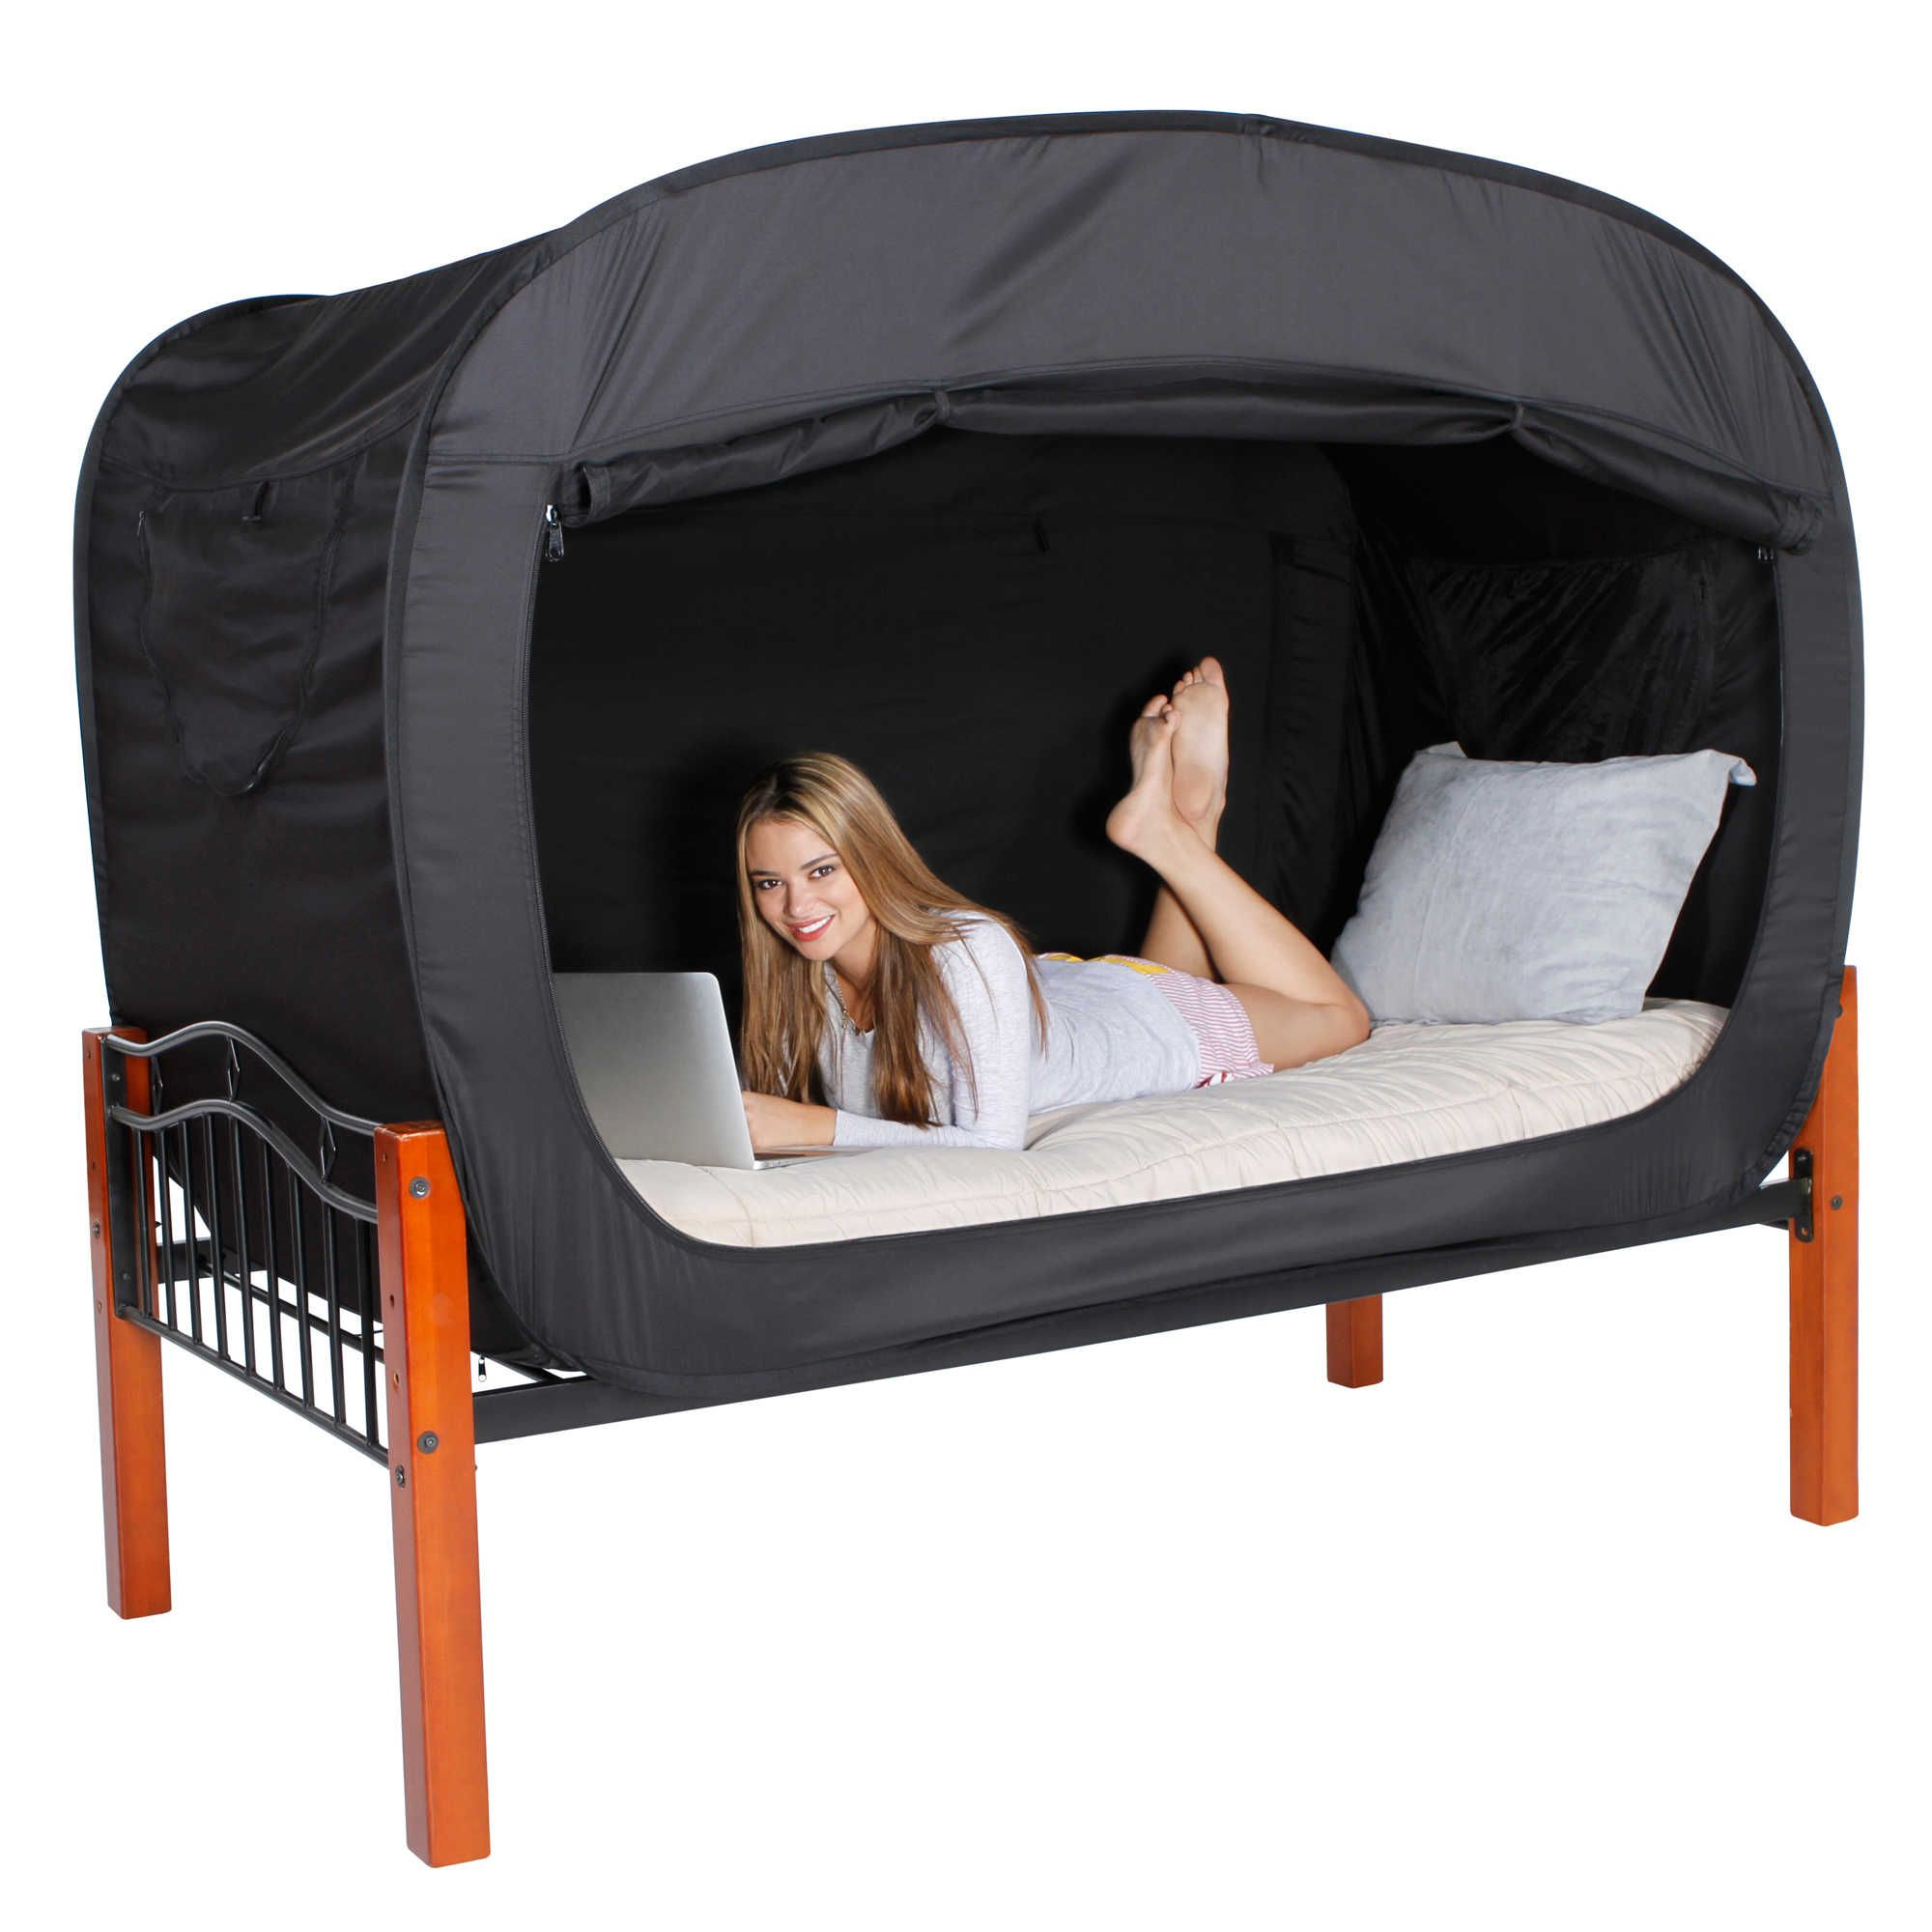 Privacy Pop Twin Bed Tent in Black Bed tent, College